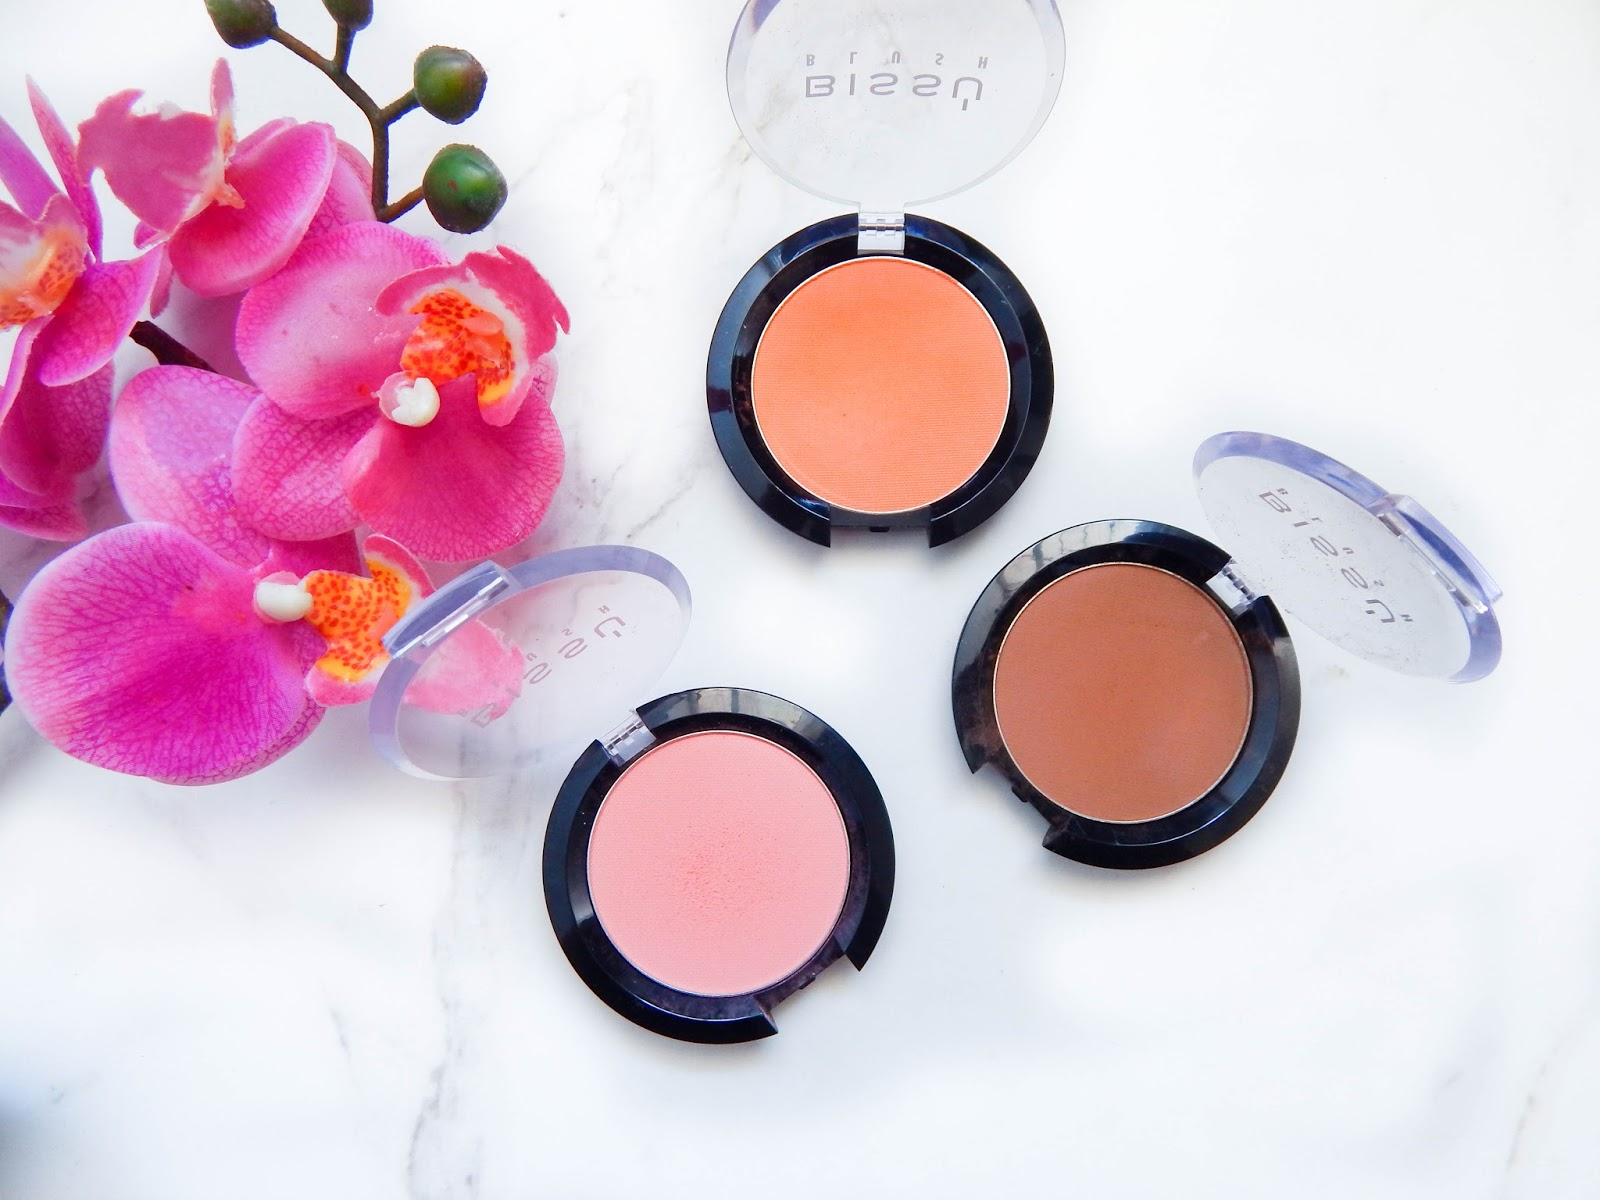 rubor blush bissu mexicana review